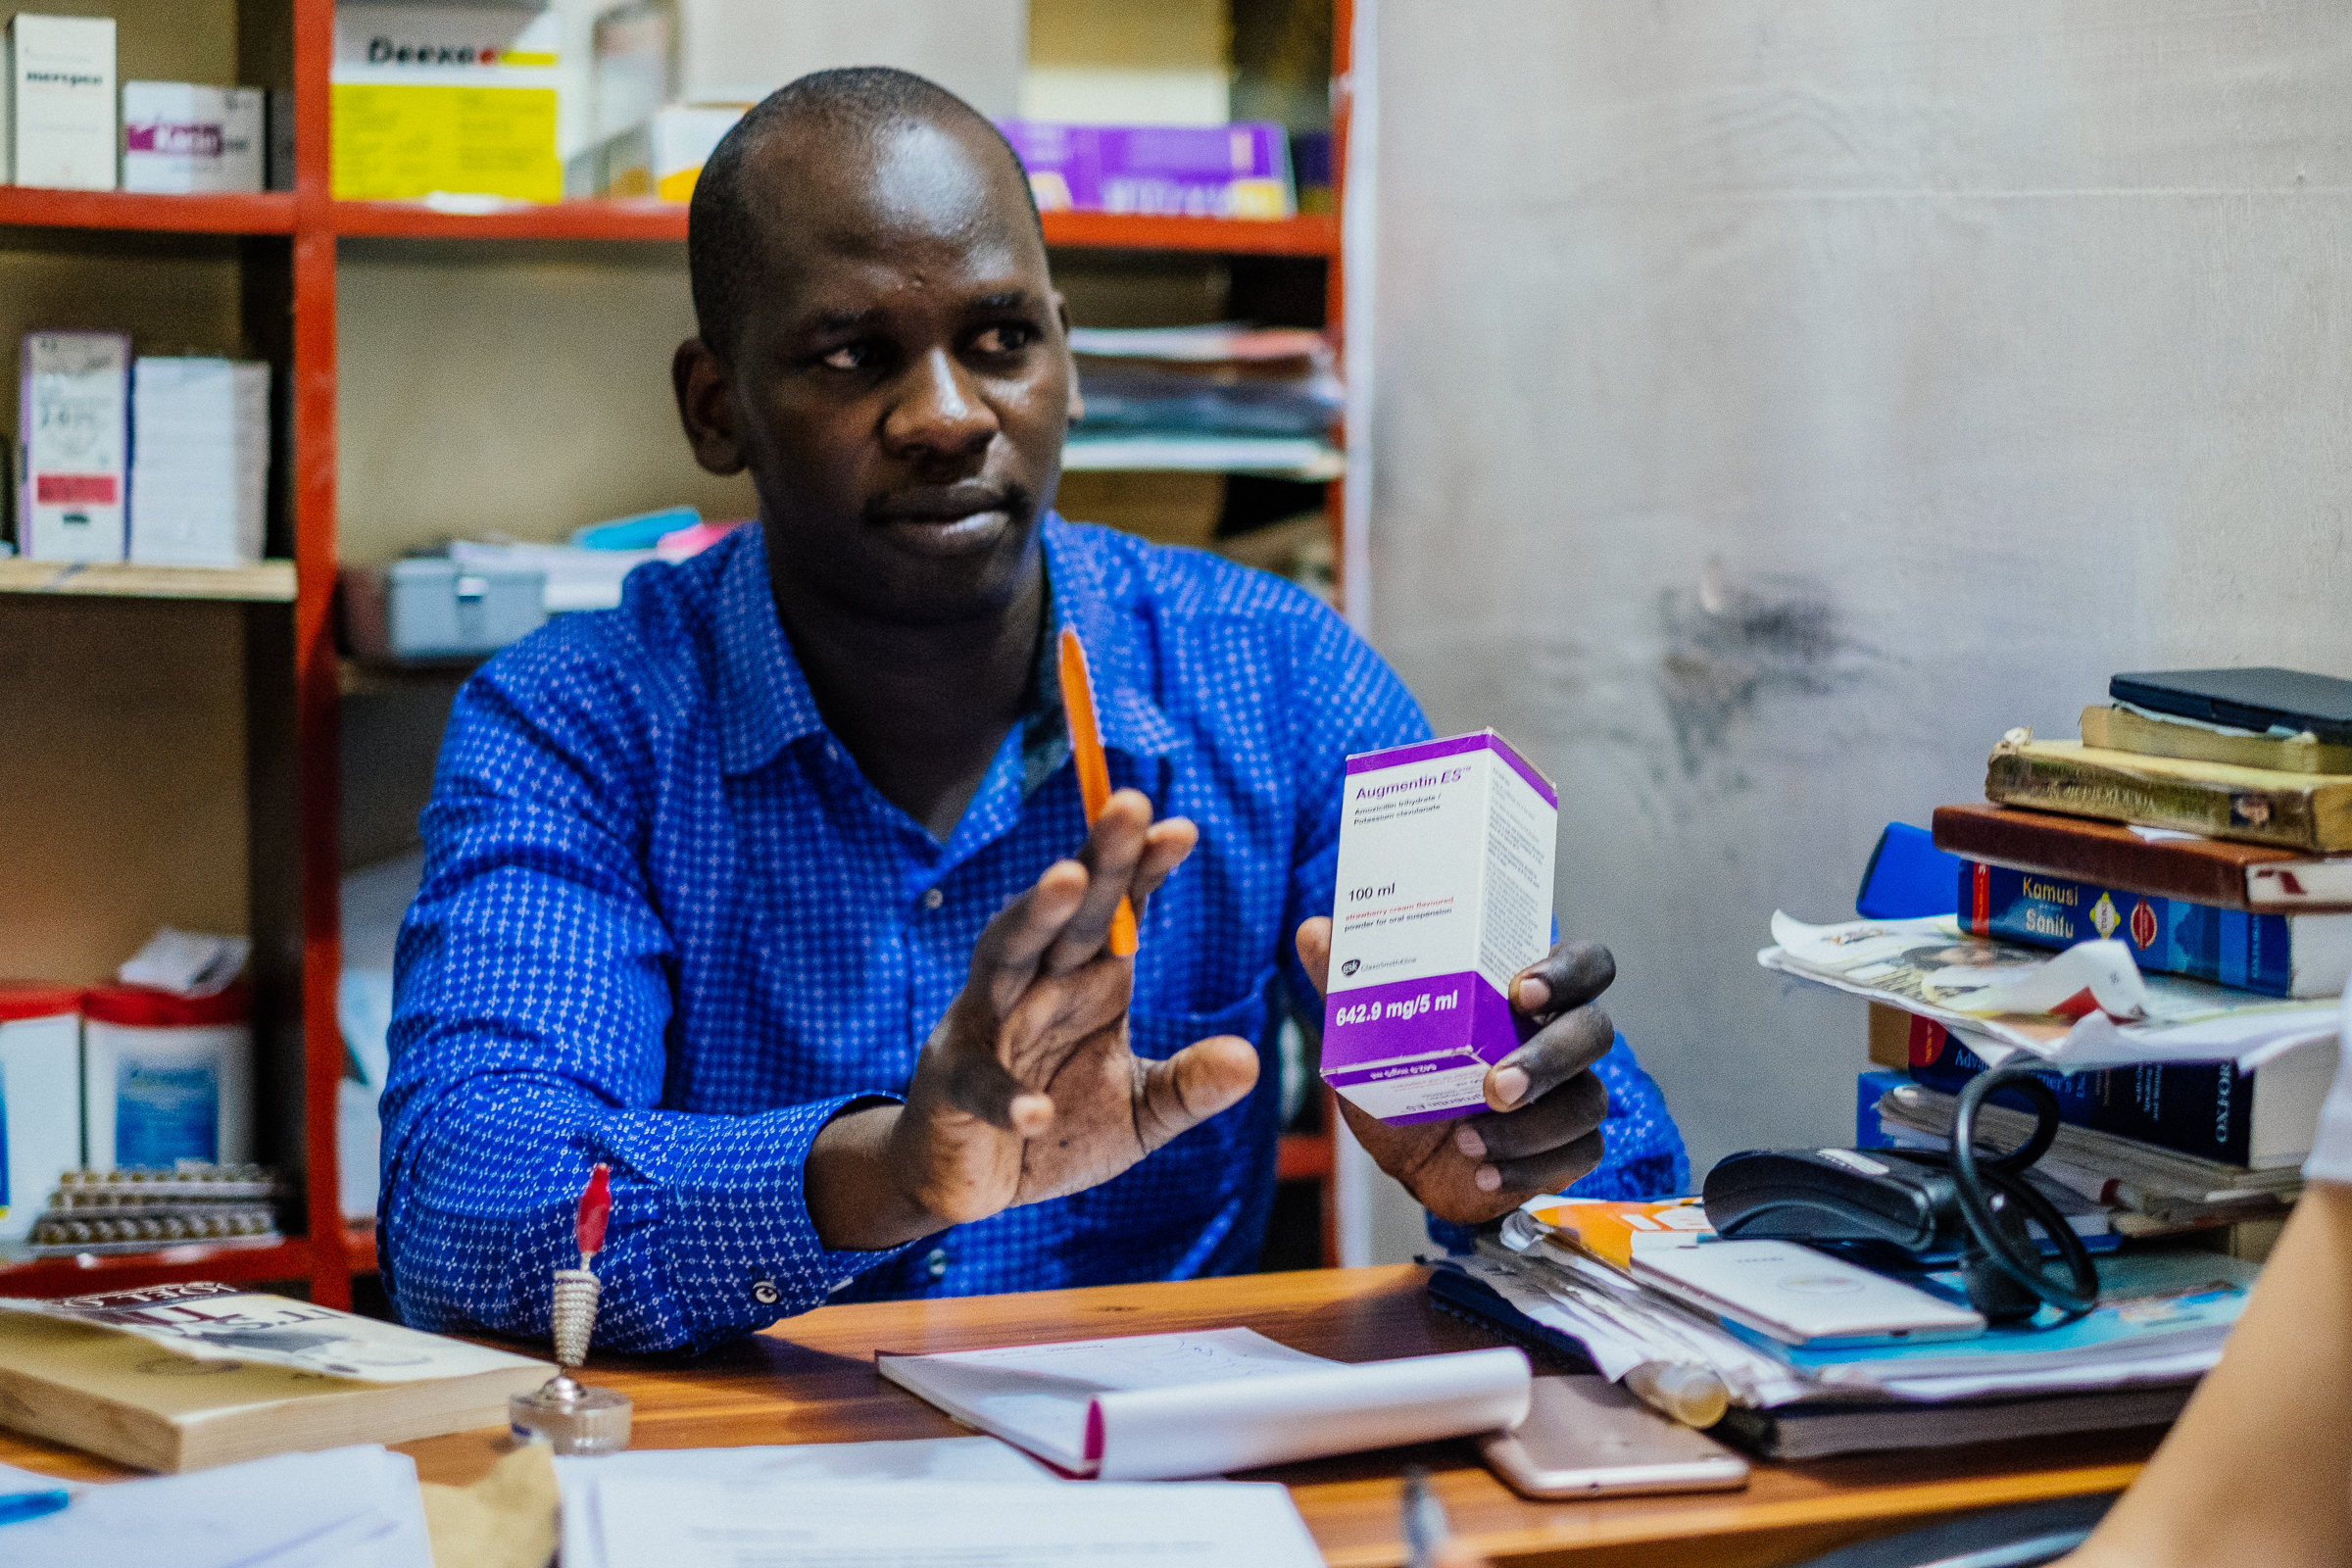 Check out the learnings from our interview with Matu, a busy pharmacist in Kisumu